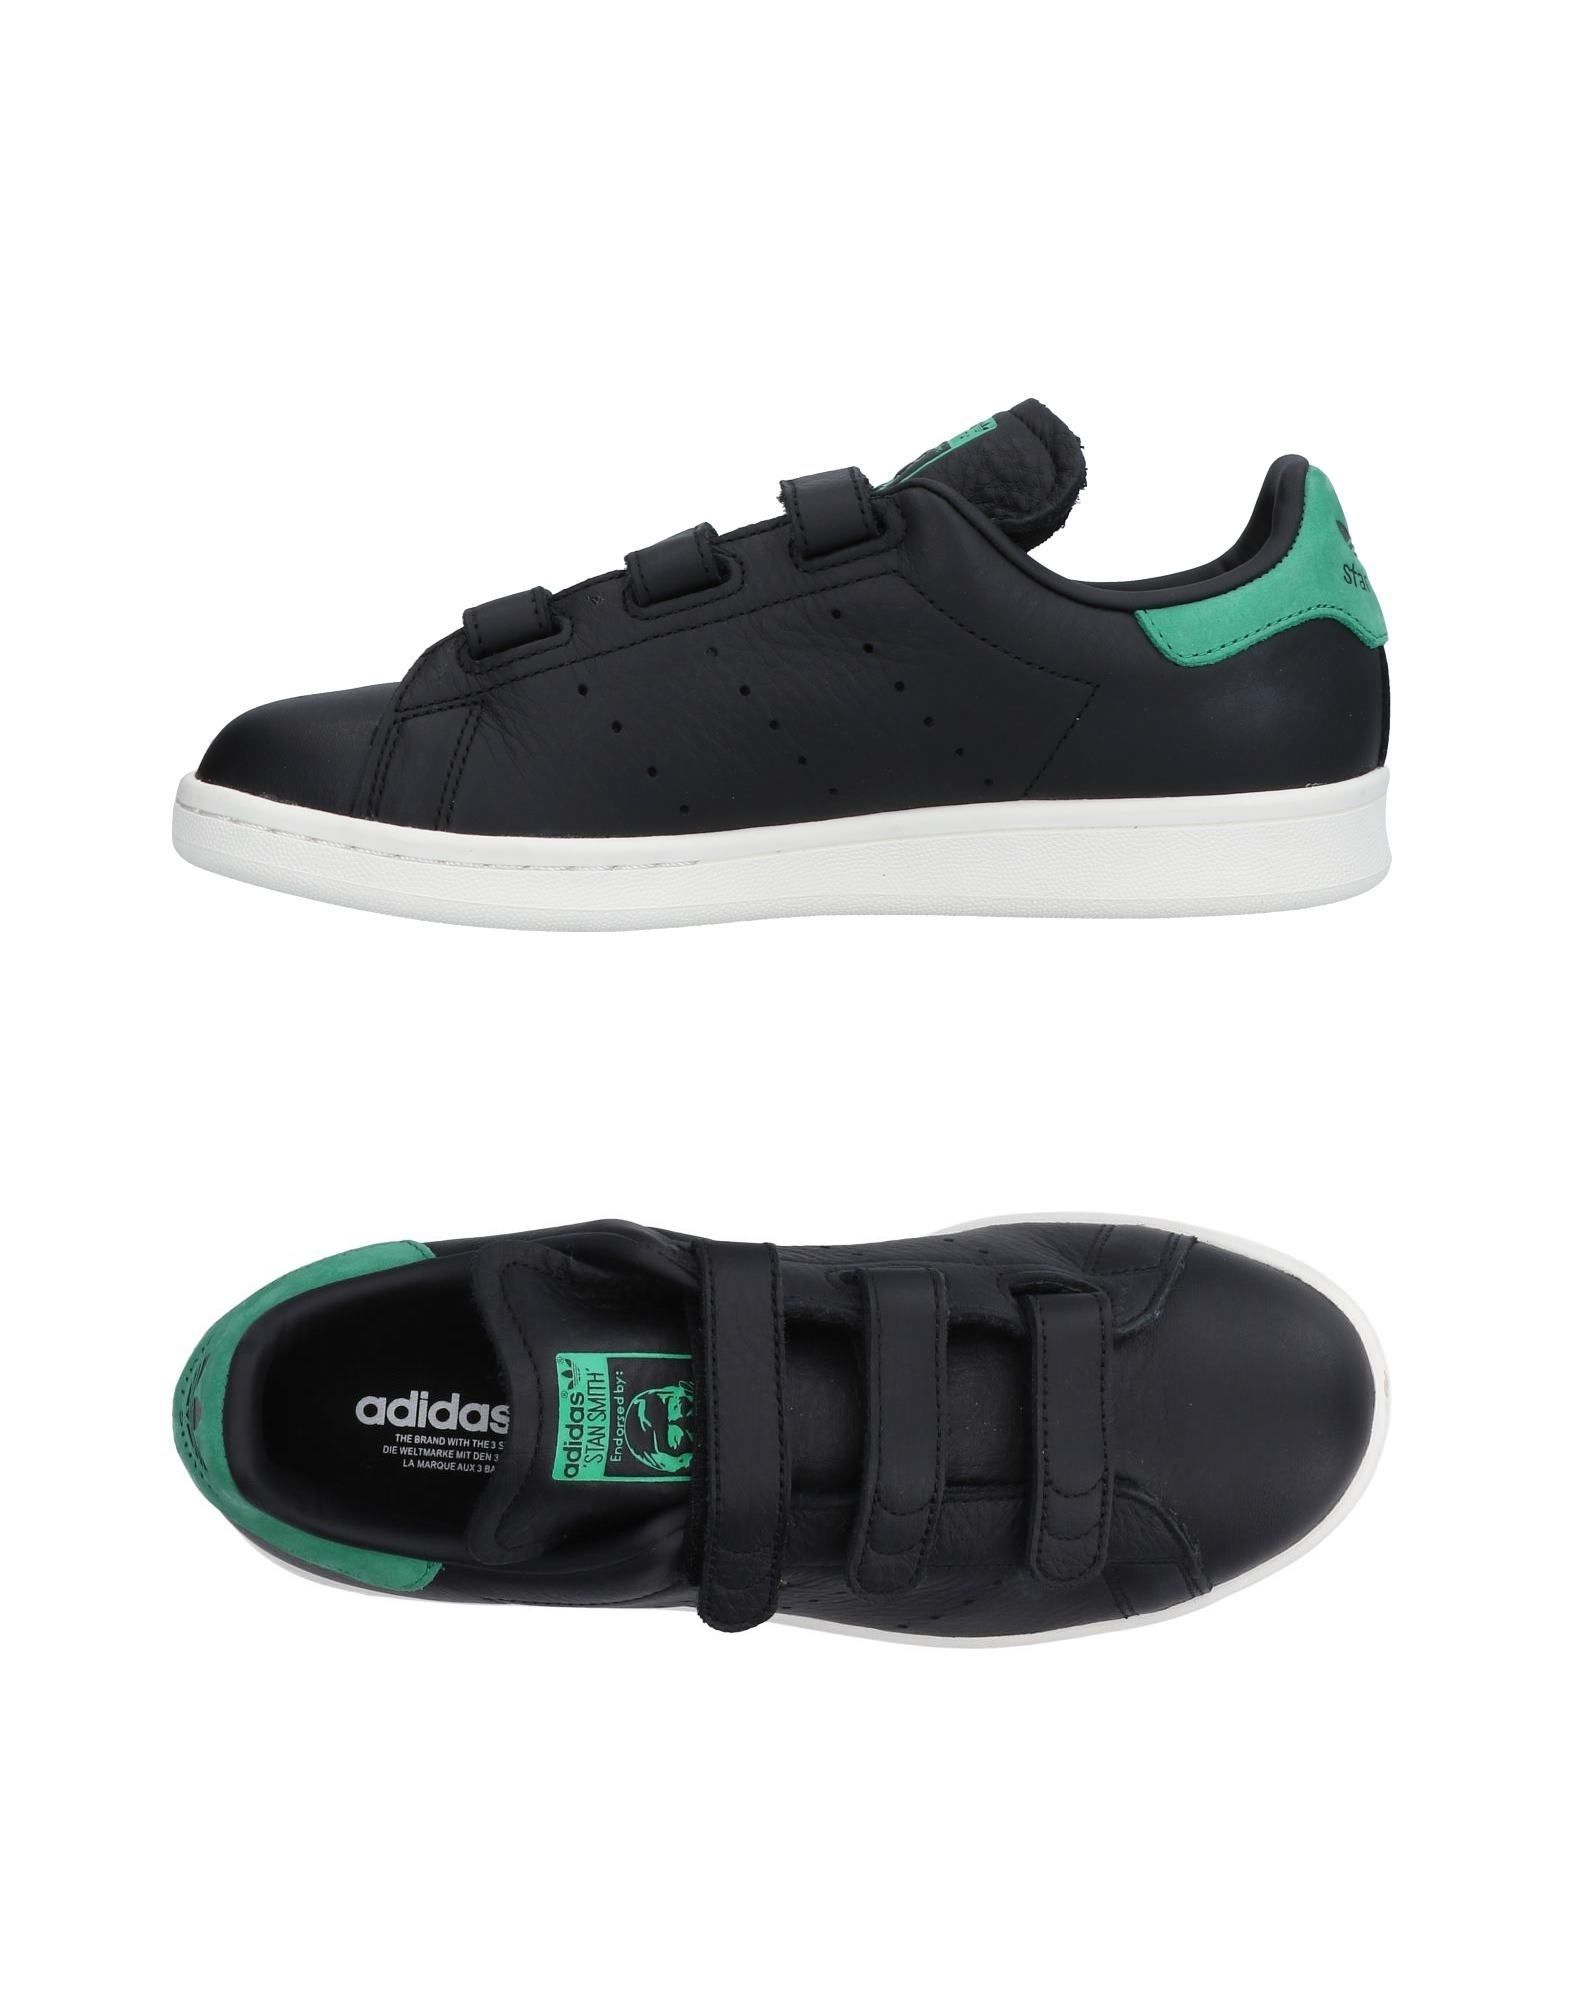 Sneakers Adidas Originals Uomo - 11508946OS